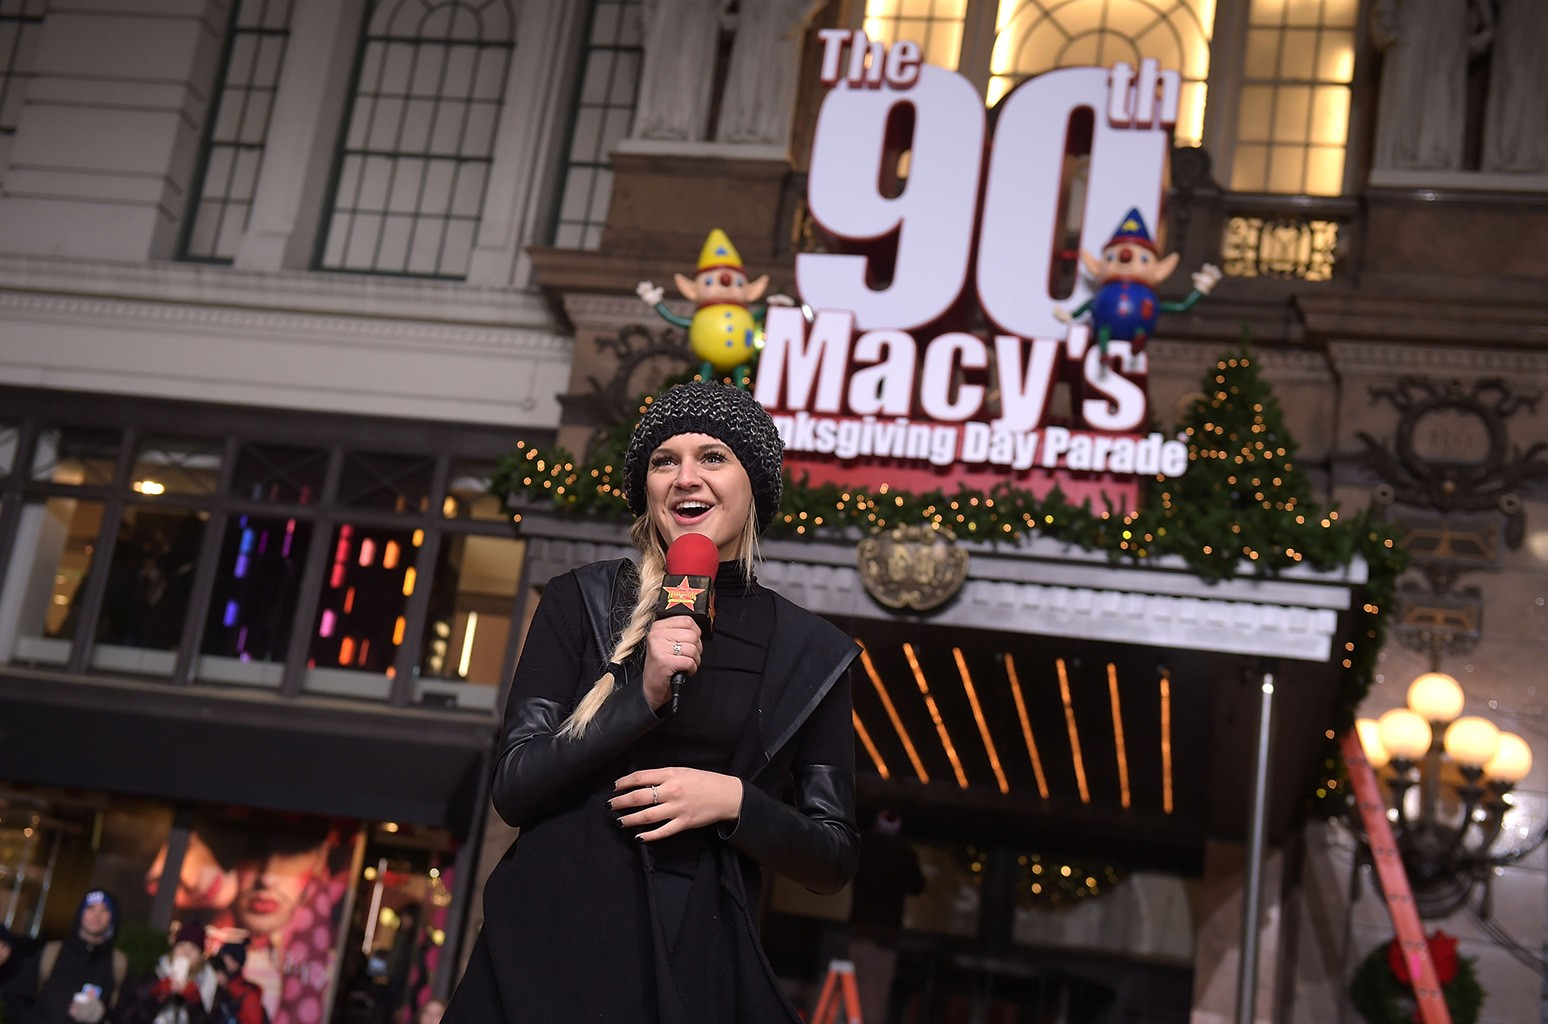 Kelsea Ballerini attends the 90th Anniversary Macy's Thanksgiving Day Parade Rehearsals - Day 2 at Macy's Herald Square on Nov. 22, 2016 in New York City.